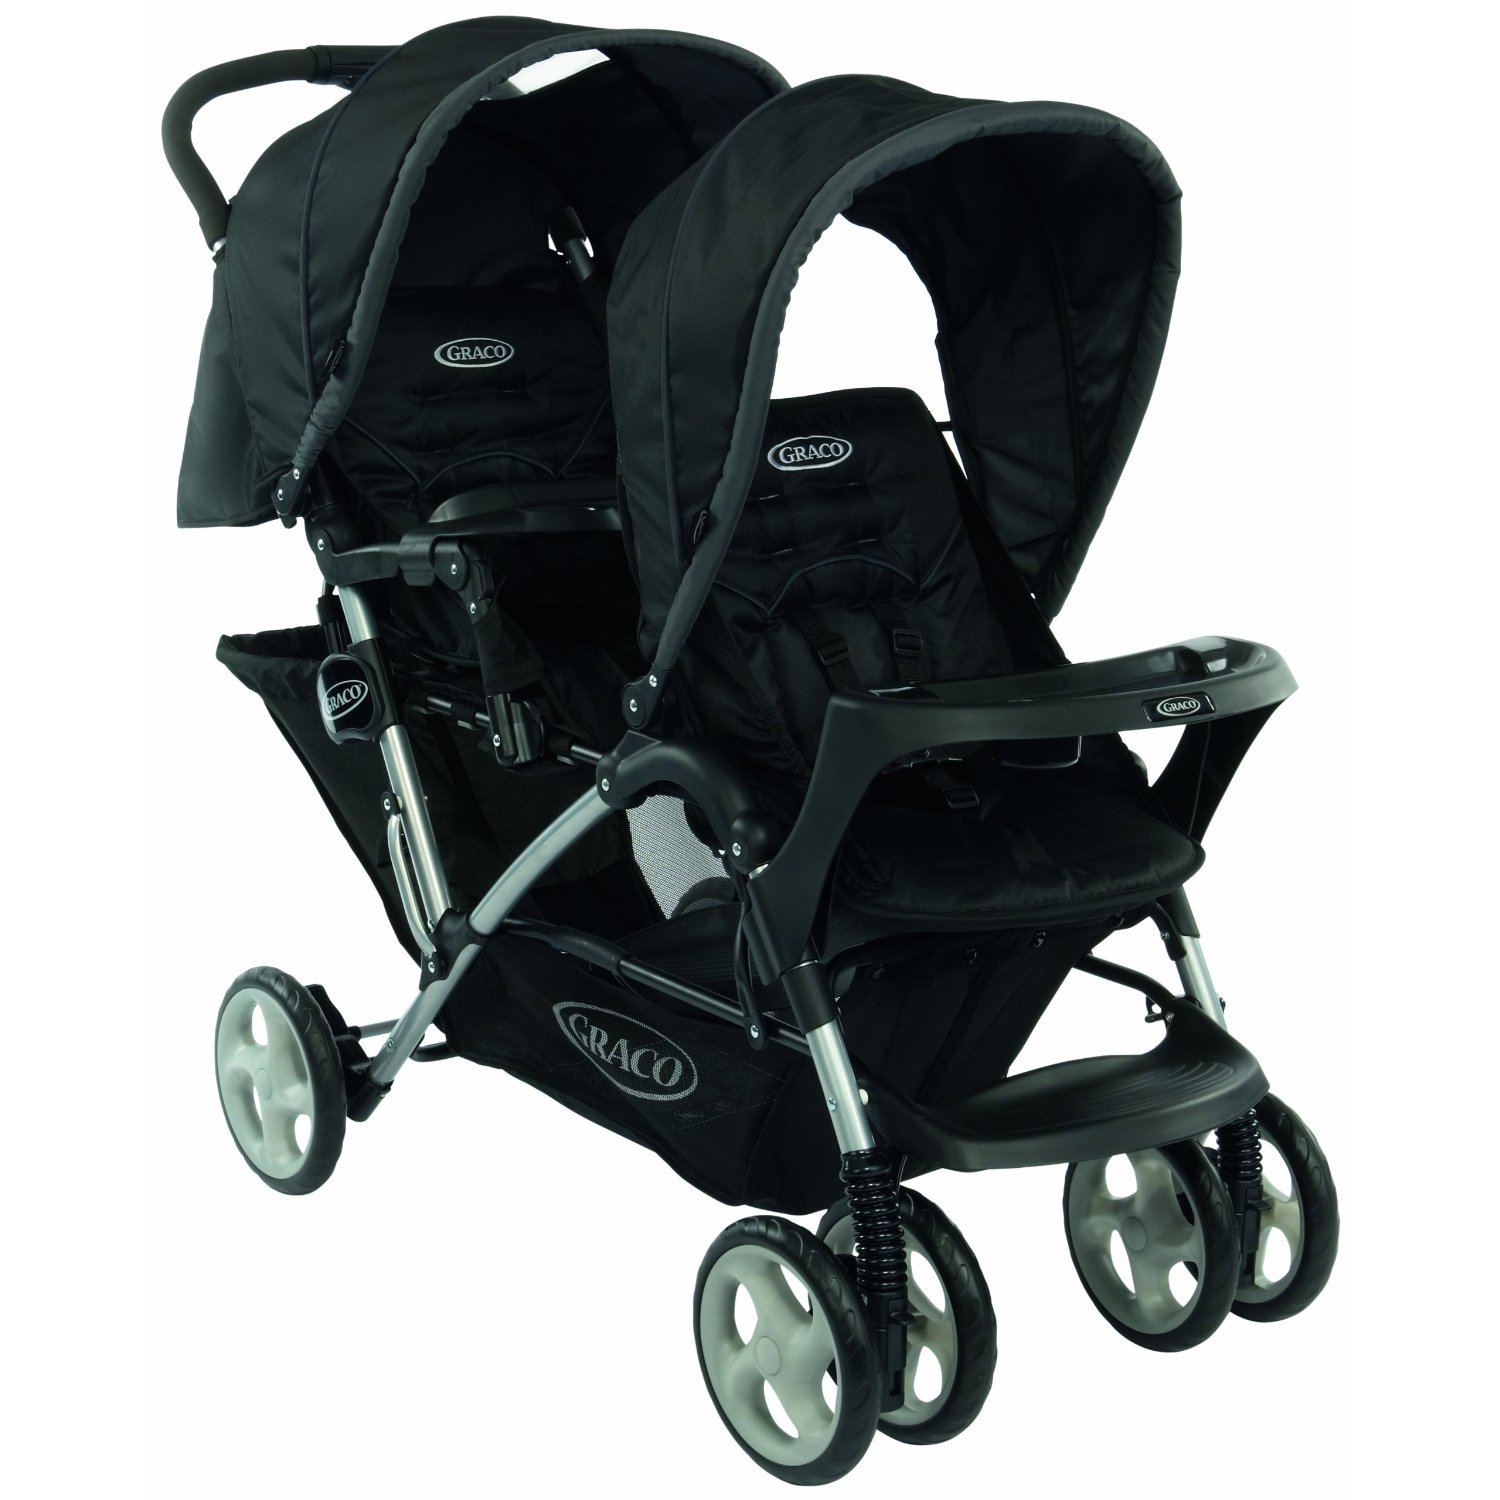 Uno2duo Stroller Graco Modes Duo All Colors Illinoispigskin